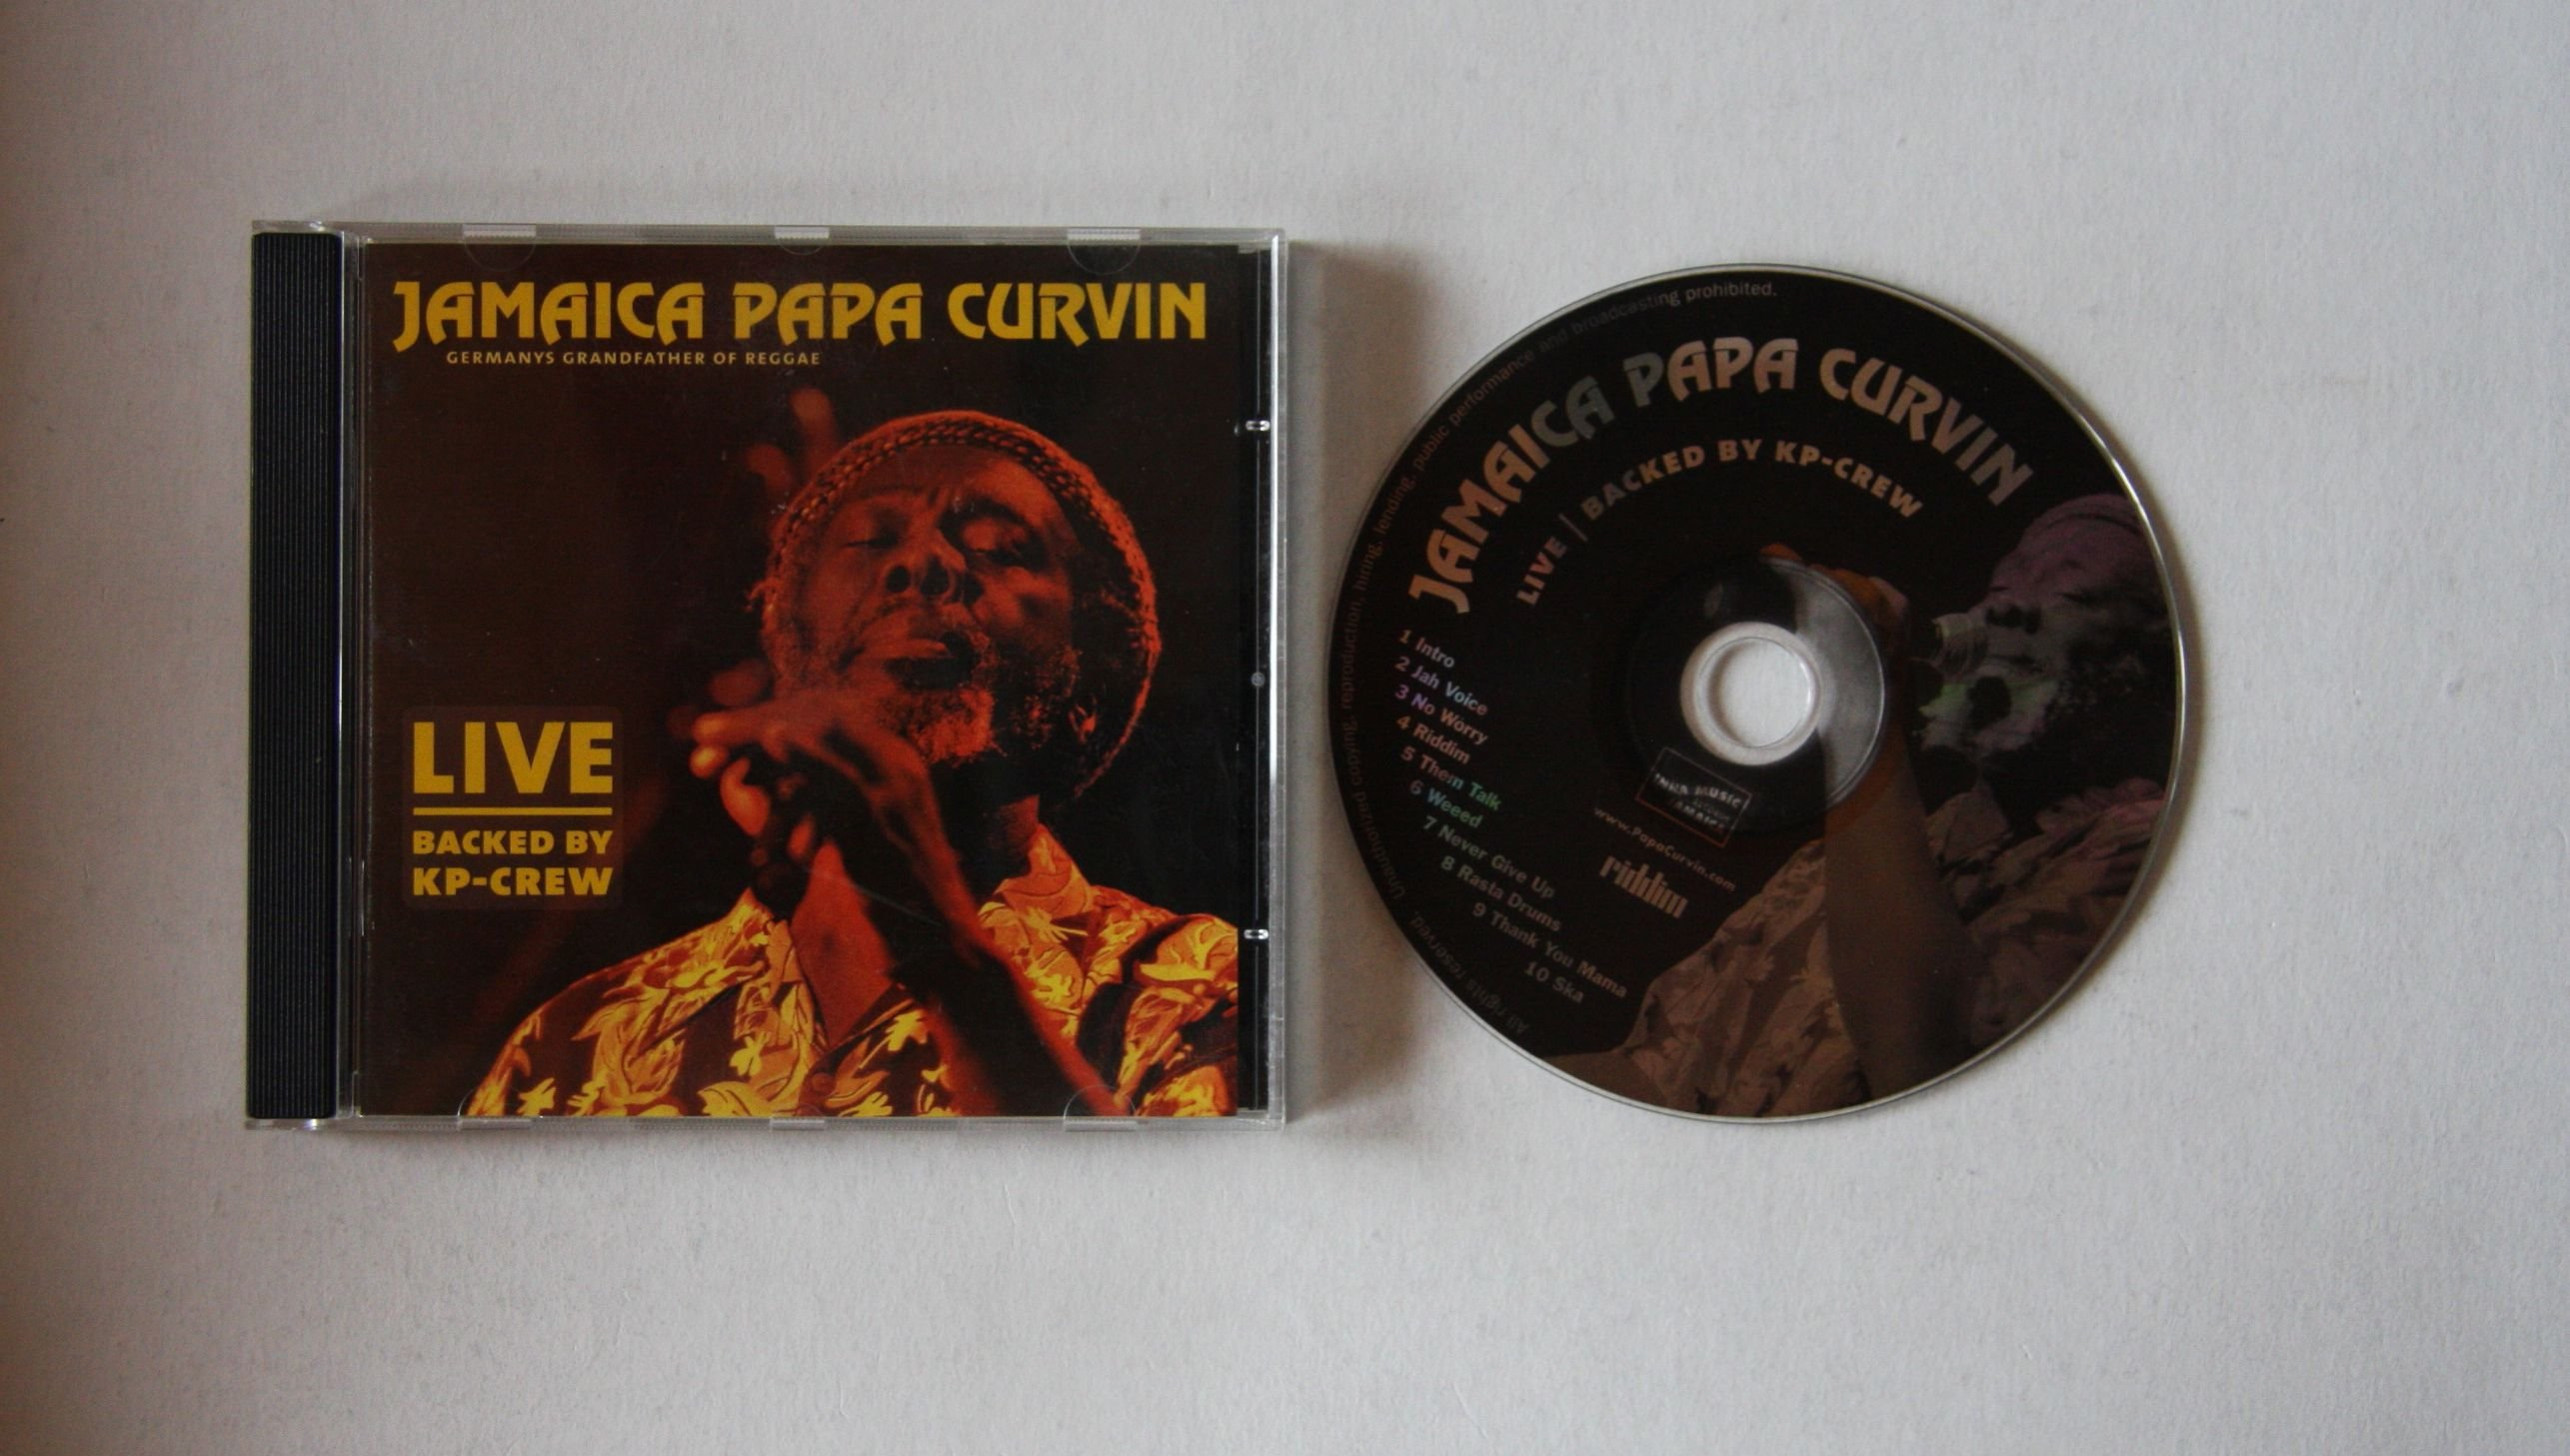 Jamaica Papa Curvin - Live - Backed By Kp-crew